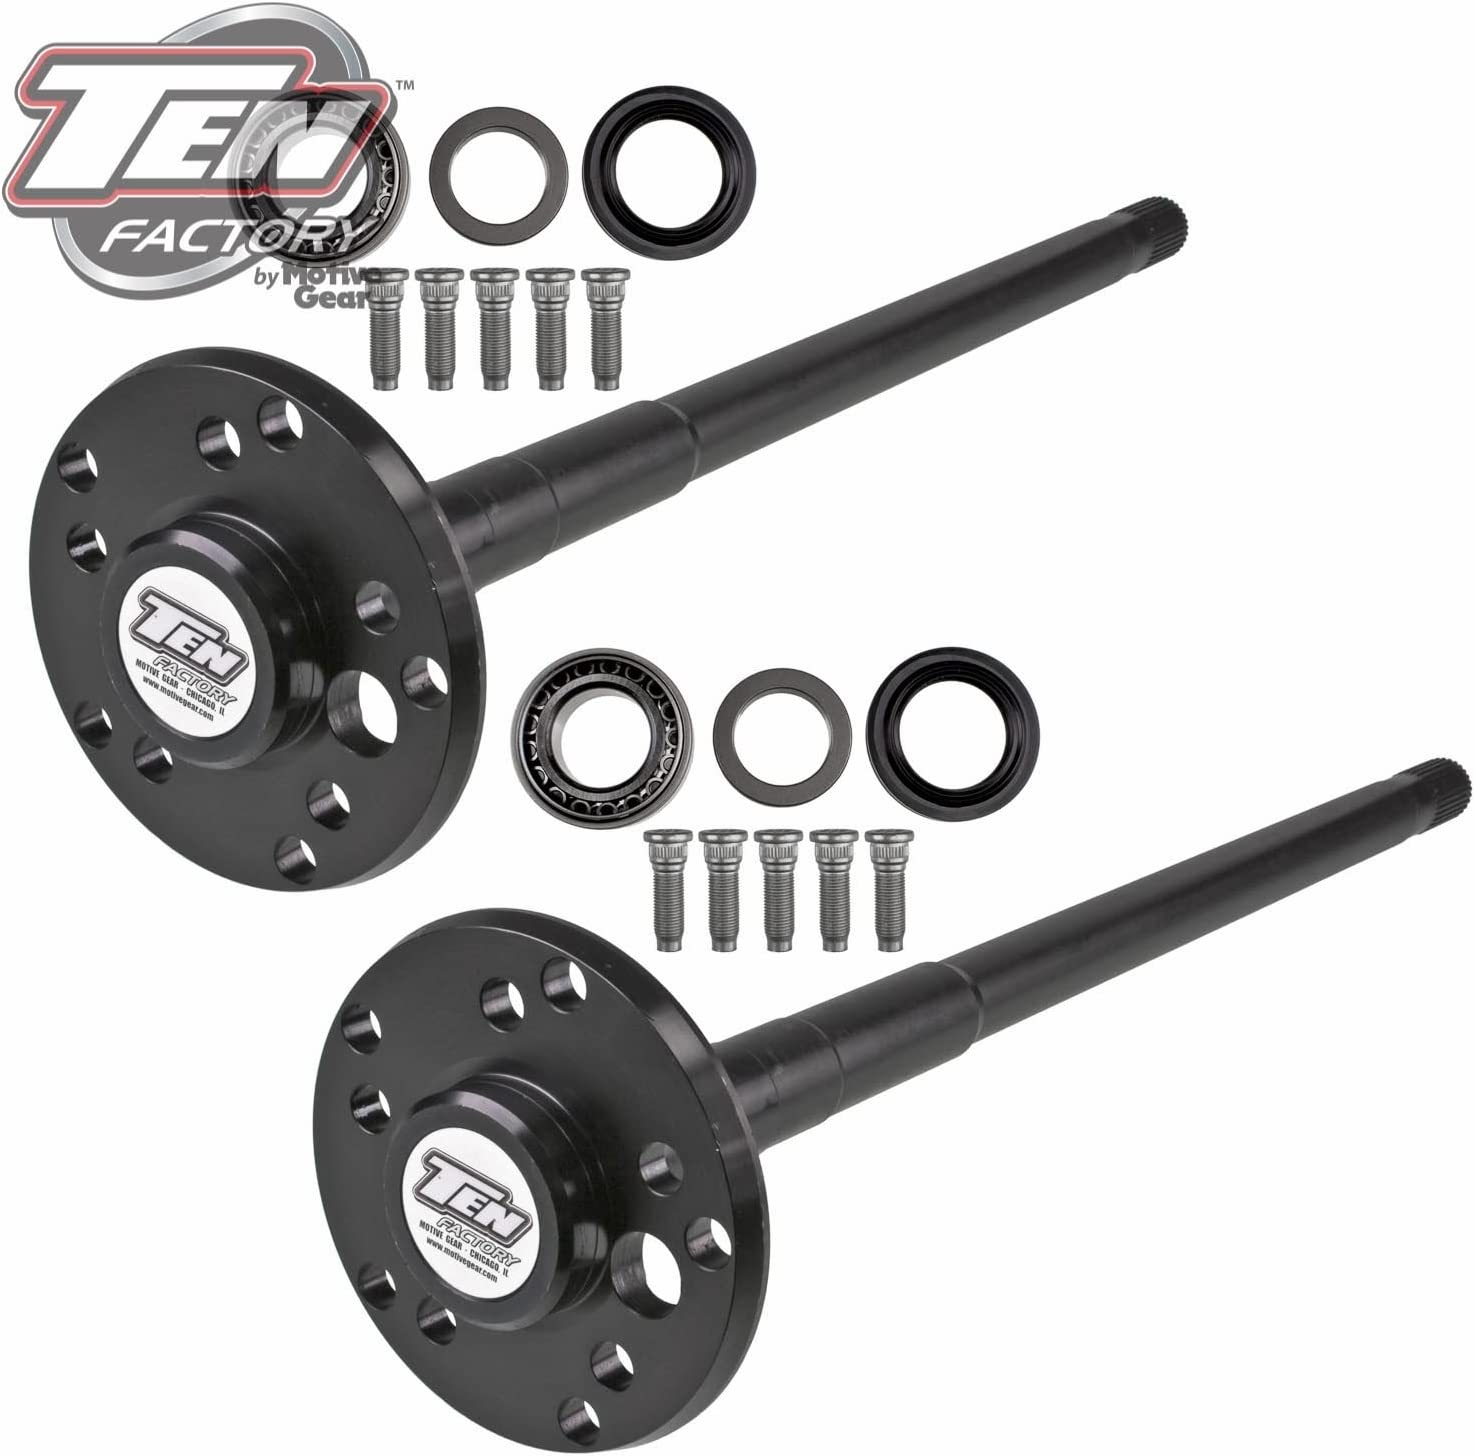 for DANA 44 87-06 YJ//TJ// TEN Factory MG22135 Rear Axle Kit